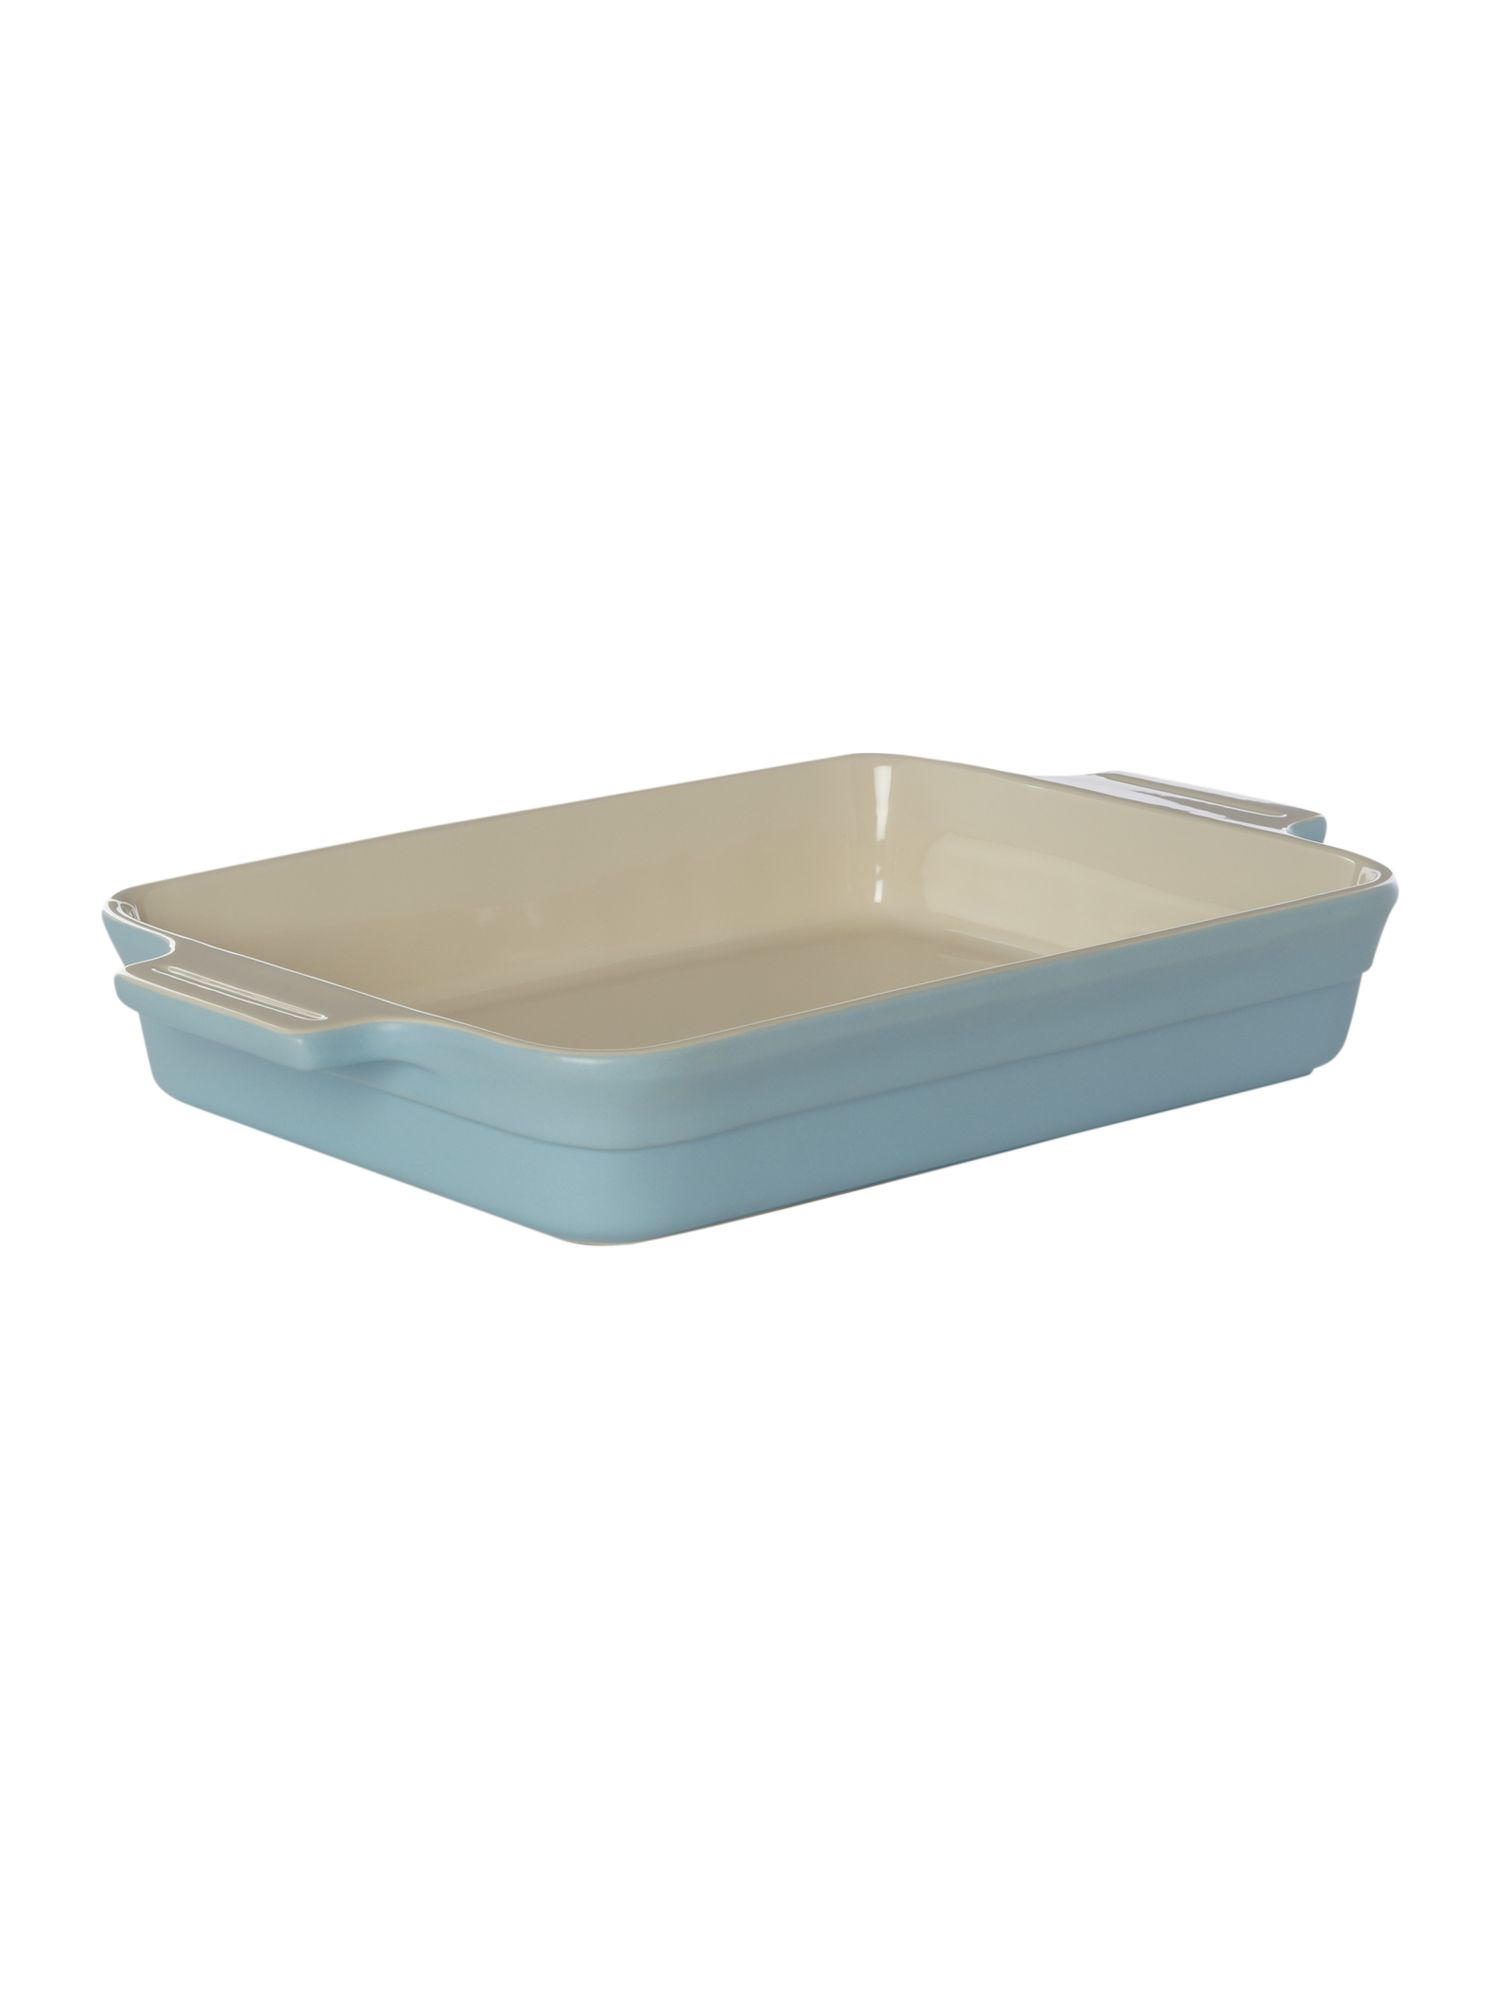 Maison rectangular baker 32cm, Pale blue